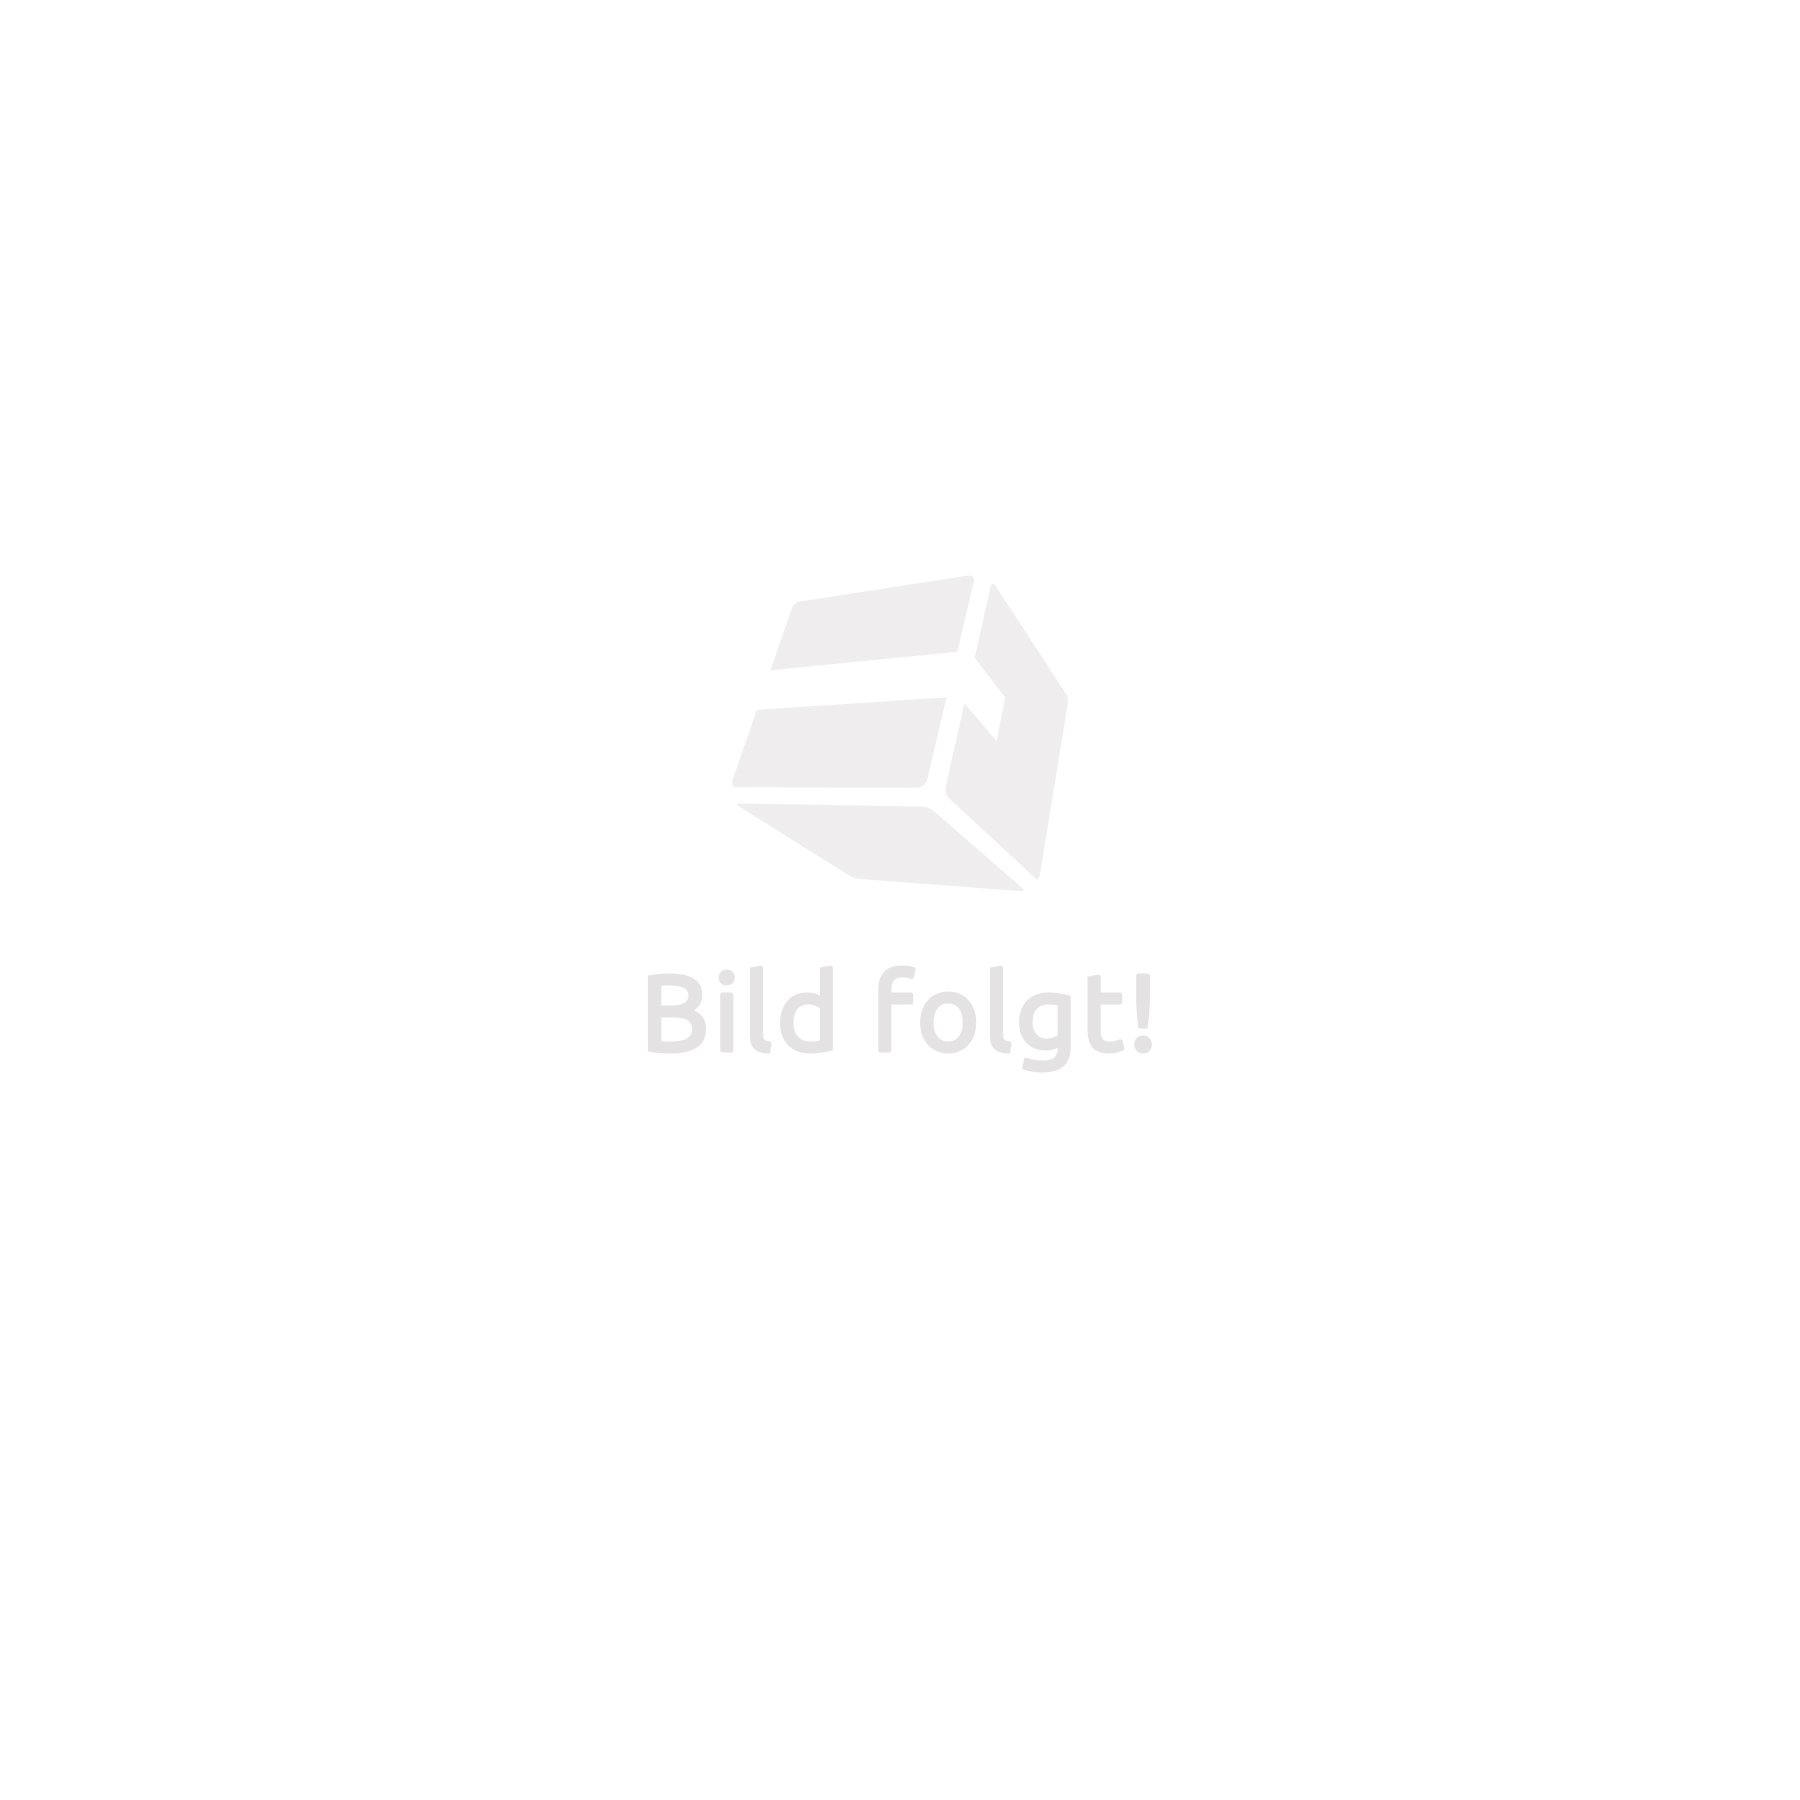 Hundetransportbox double 90 x 97 x 69,5 cm